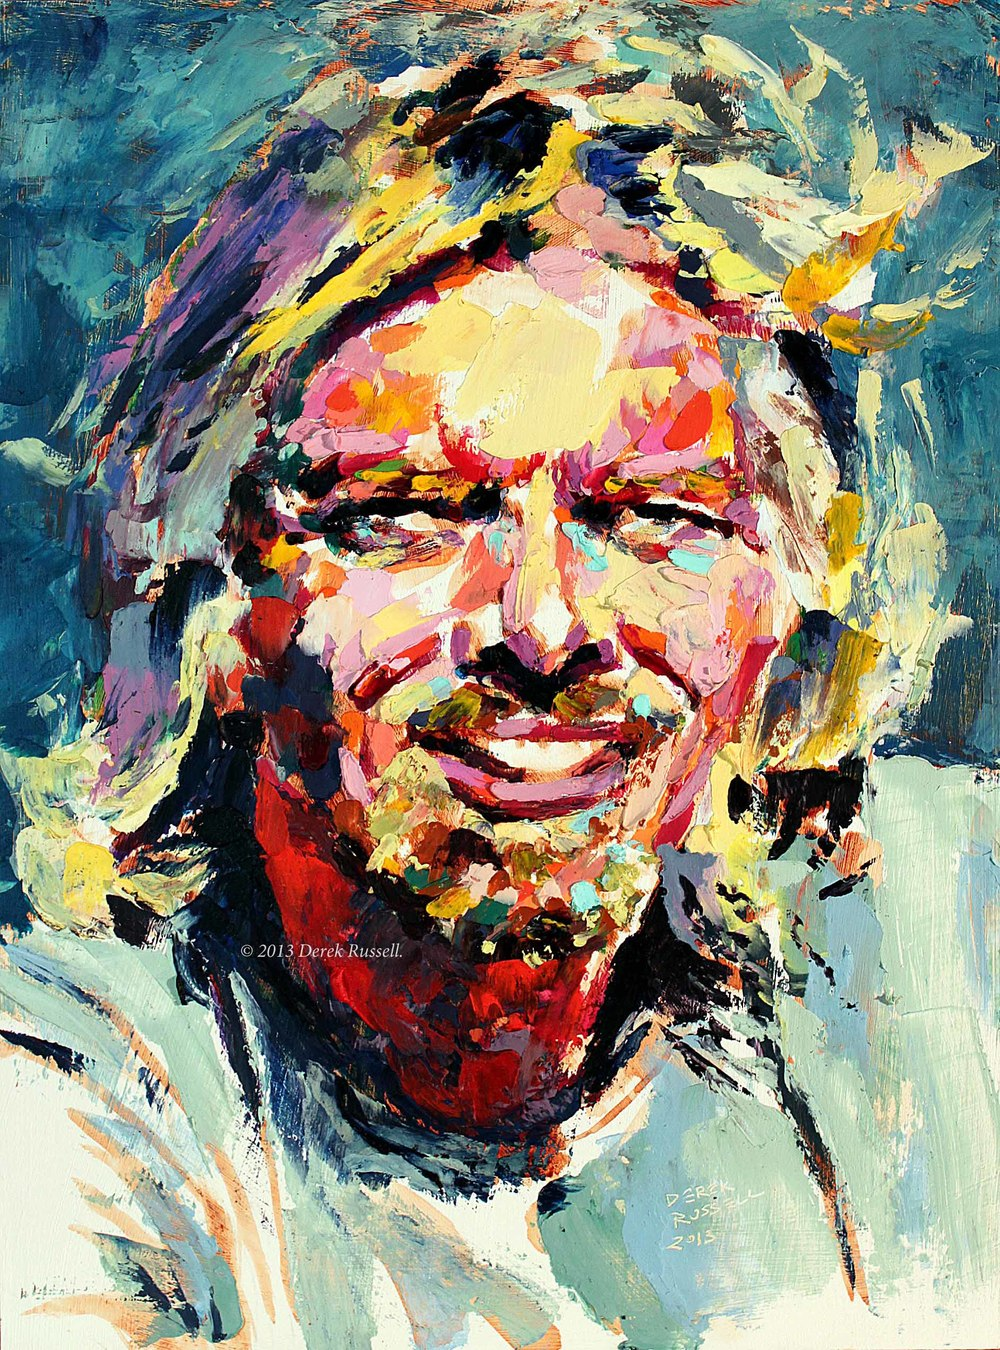 Richard Branson Original Acrylic & Oil Portrait Painting by Artist Derek Russell 2013 Copyright.jpg